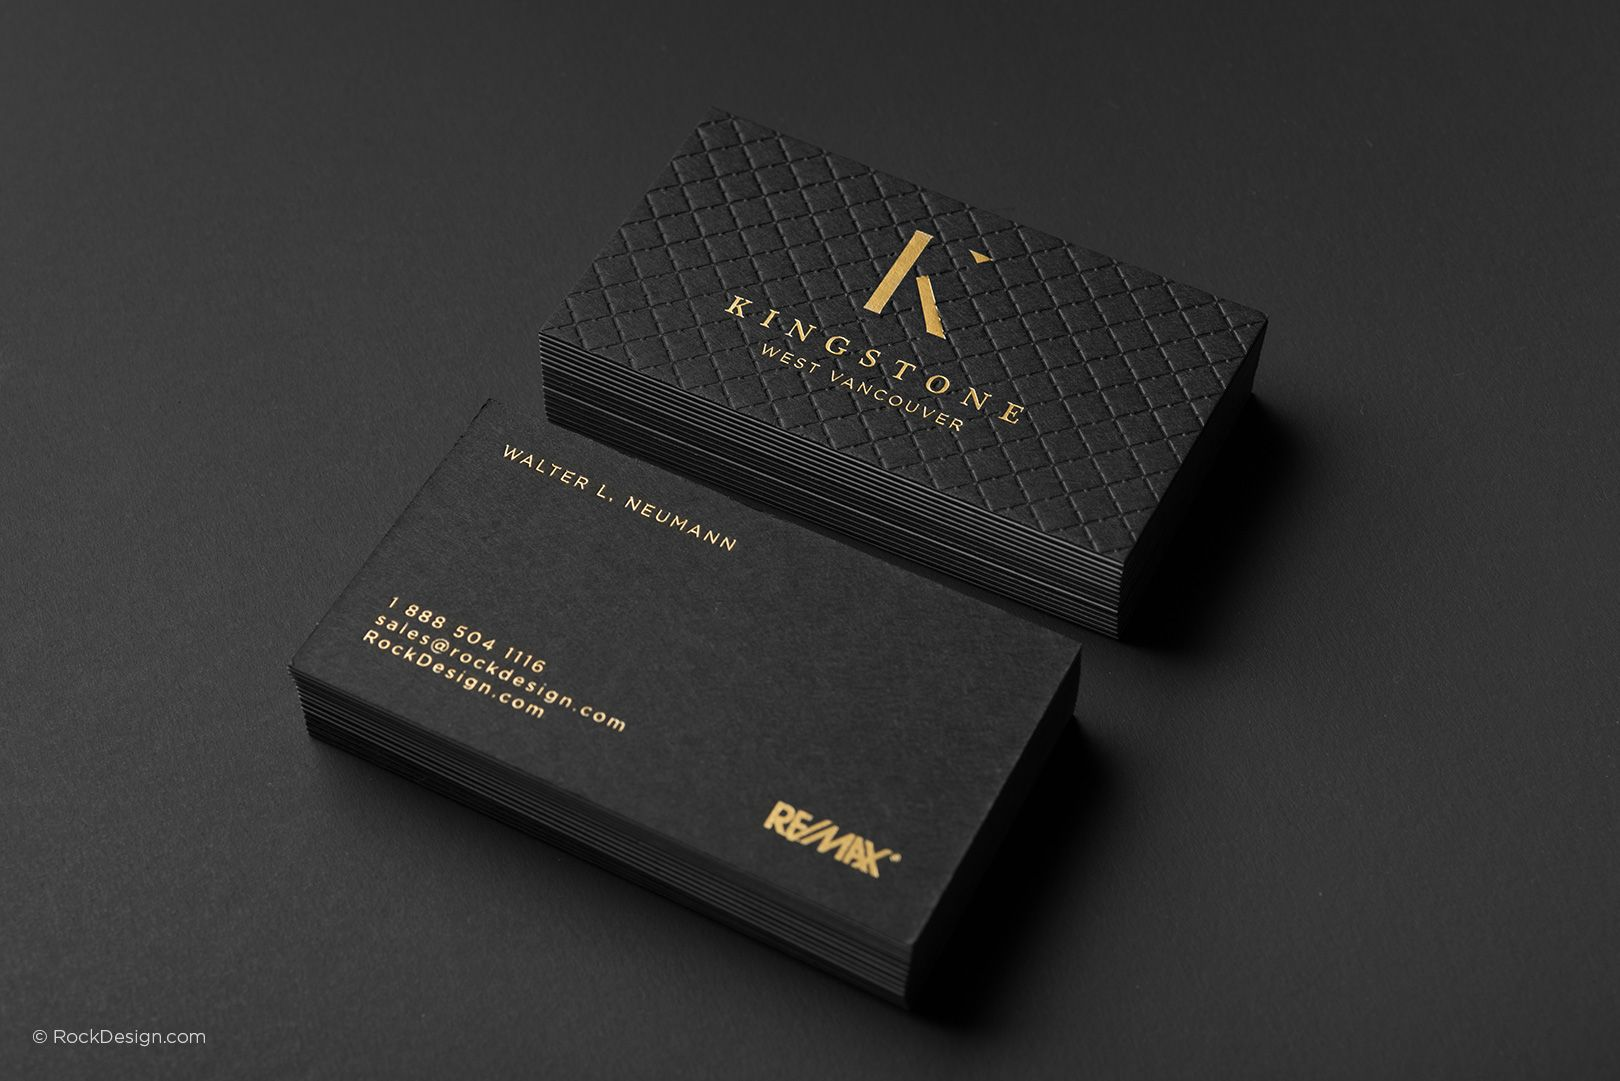 Luxury realtor triplex with gold foil business card template ...